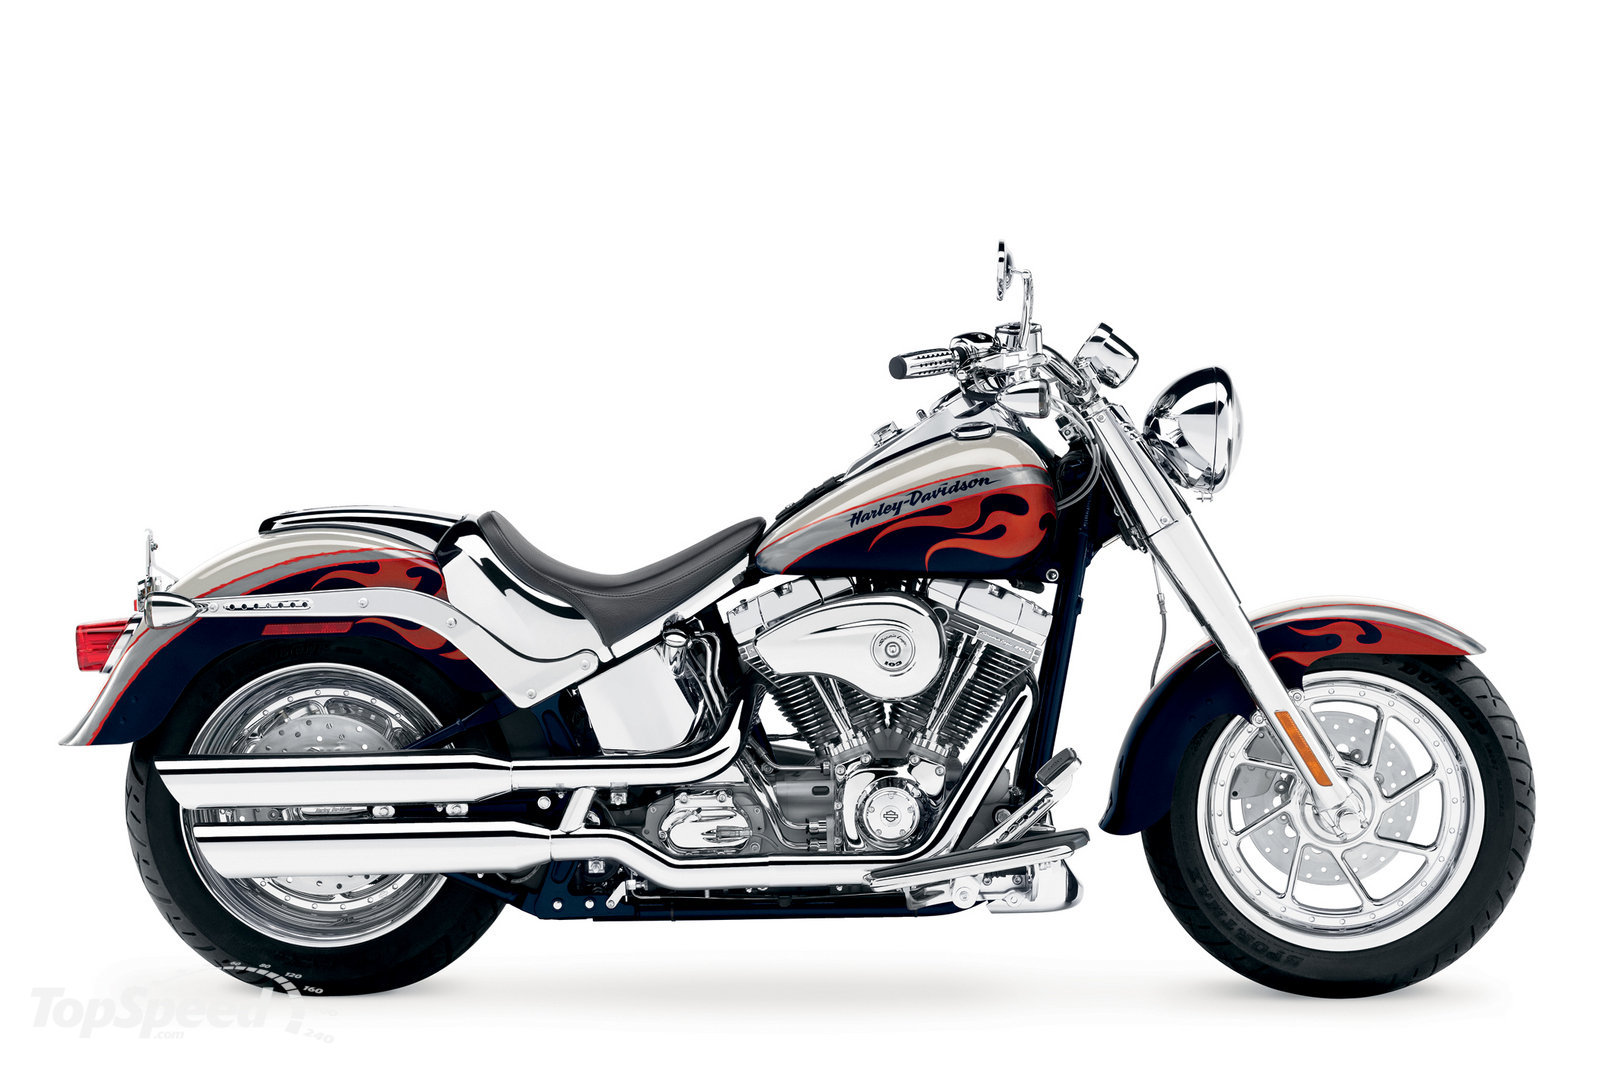 Harley-Davidson Screaming Eagle Fat Boy